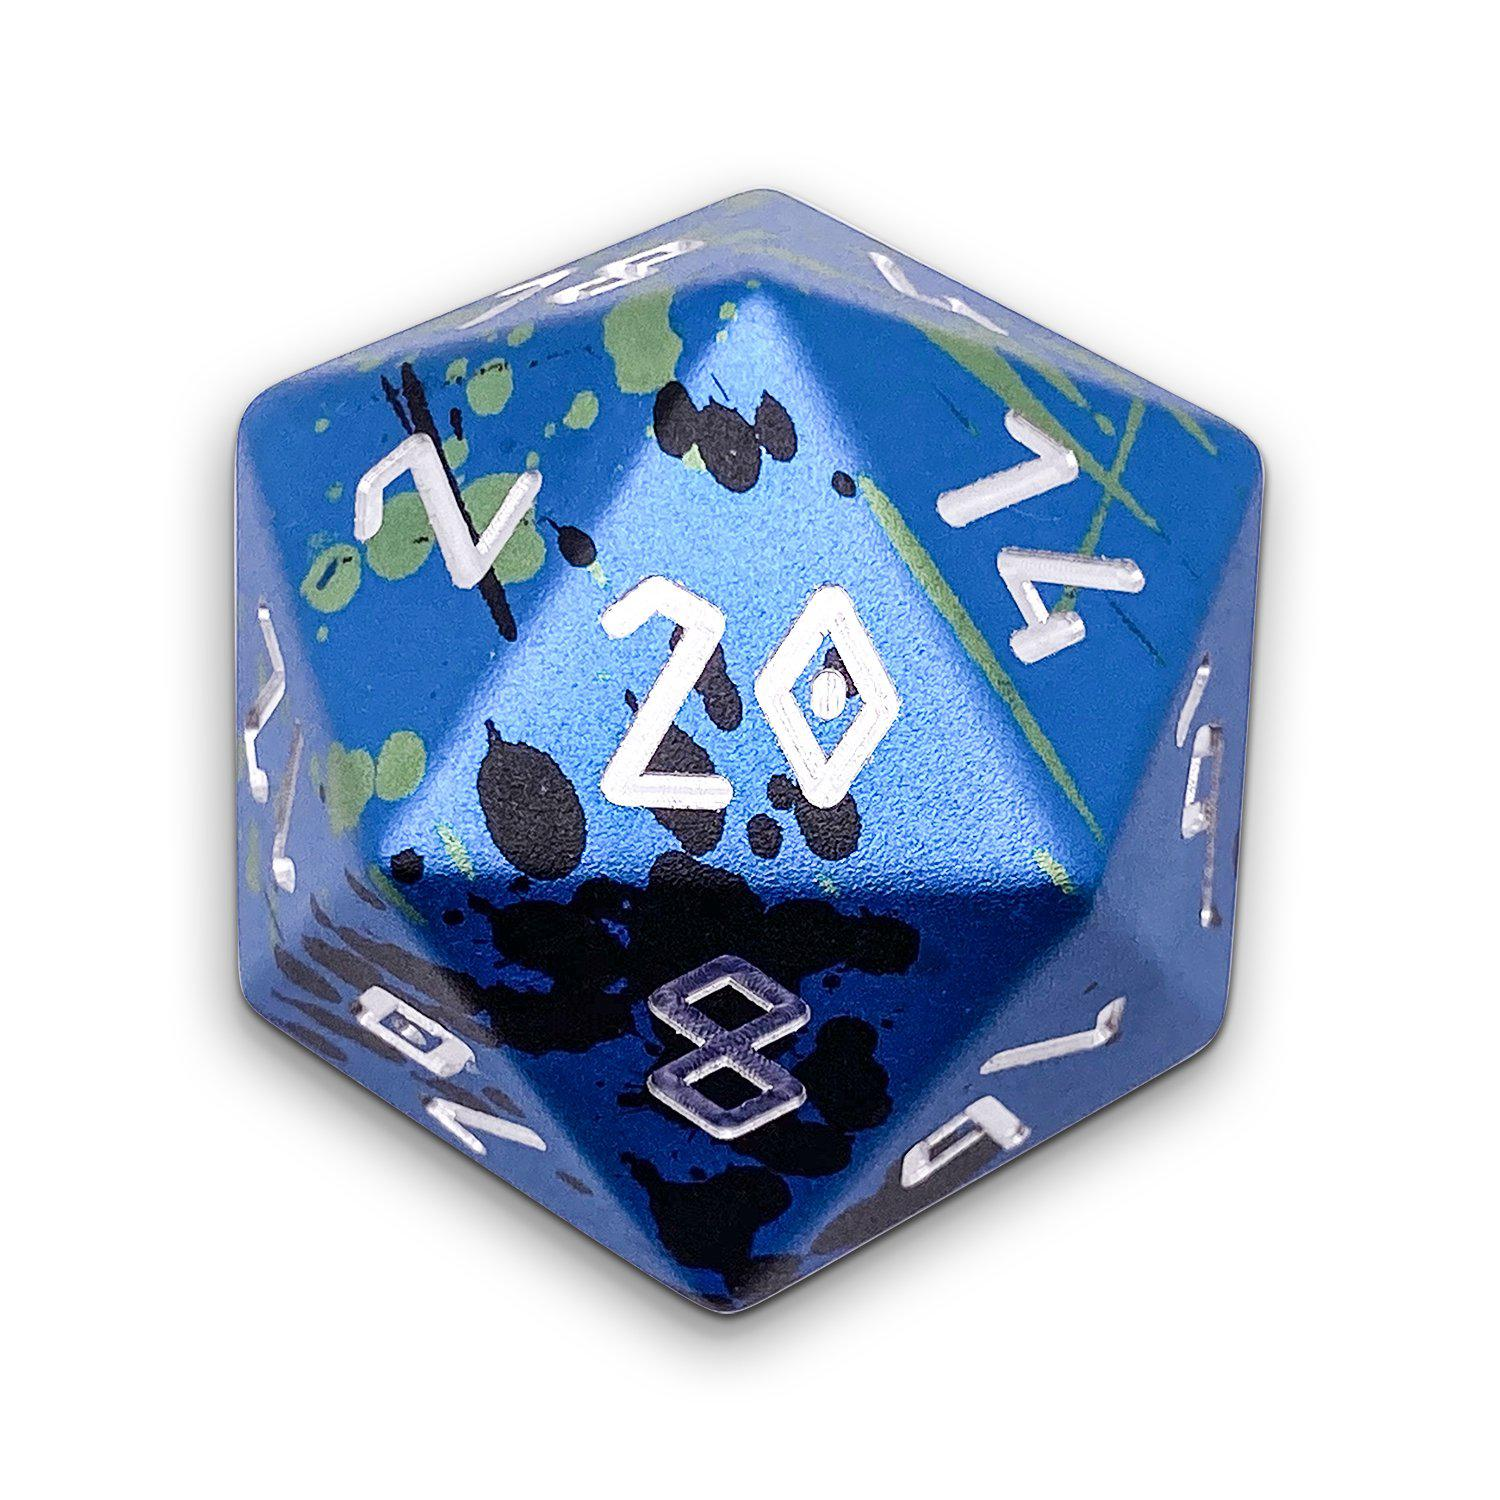 The Mystery Die TM - Wondrous Boulder® 55mm D20 6063 Aircraft Grade Aluminum Metal Die